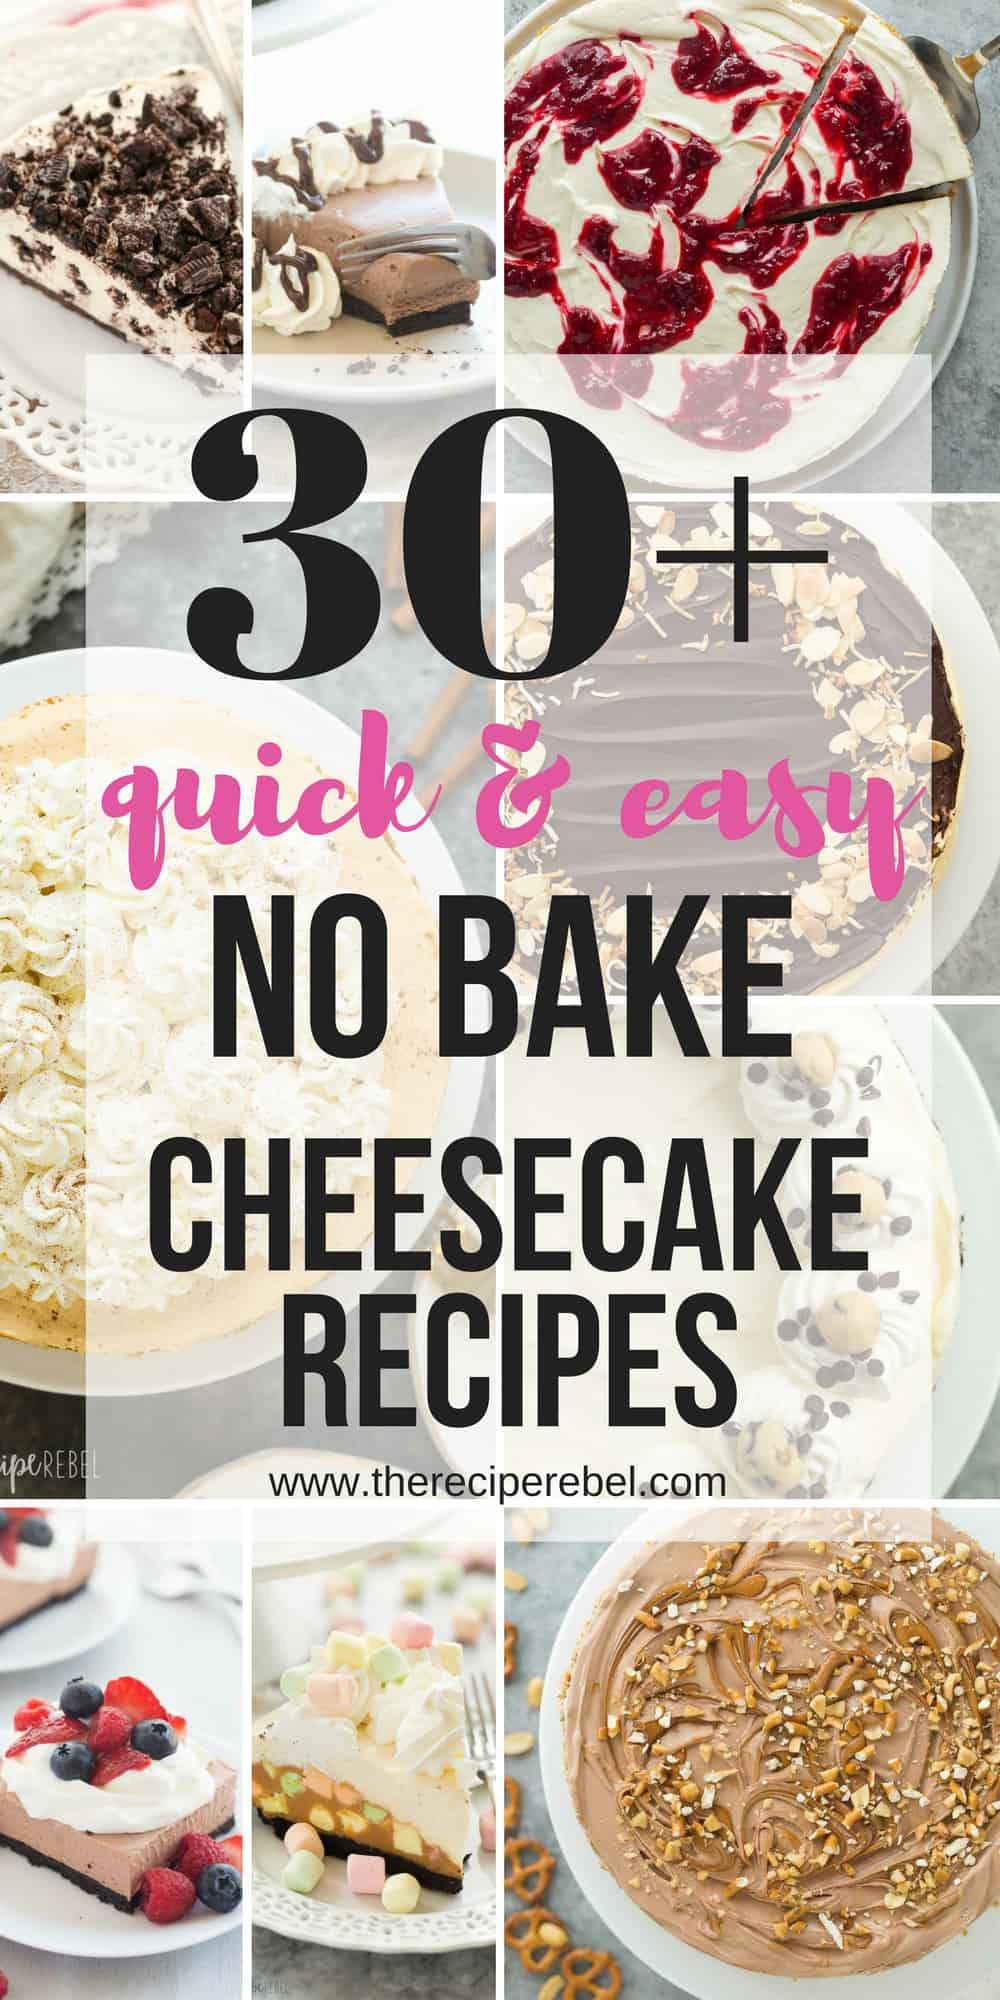 no bake cheesecake recipes collage for pinterest with multiple images and a title in black text